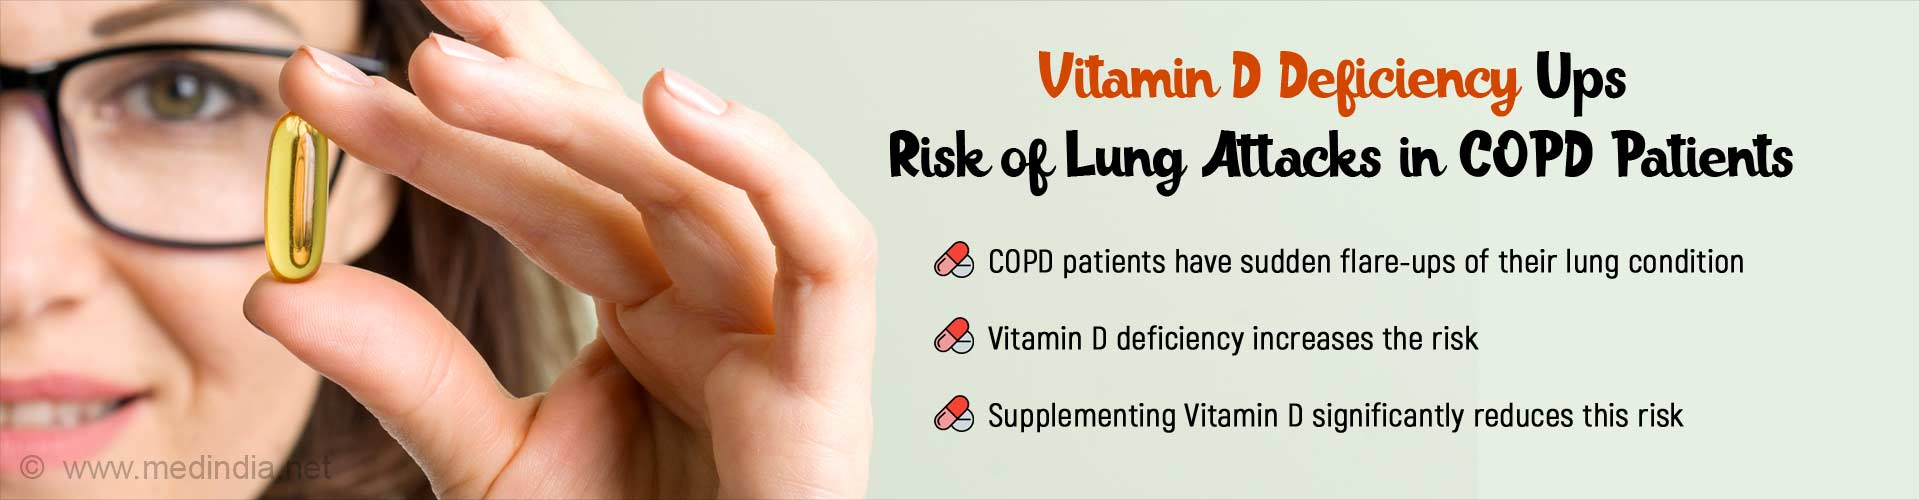 Vitamin D deficiency ups risk of lung attacks in patients. COPD patients have sudden flare-ups of their lung condition. Vitamin D deficiency increases the risk. Supplementing Vitamin D significantly reduces this risk.